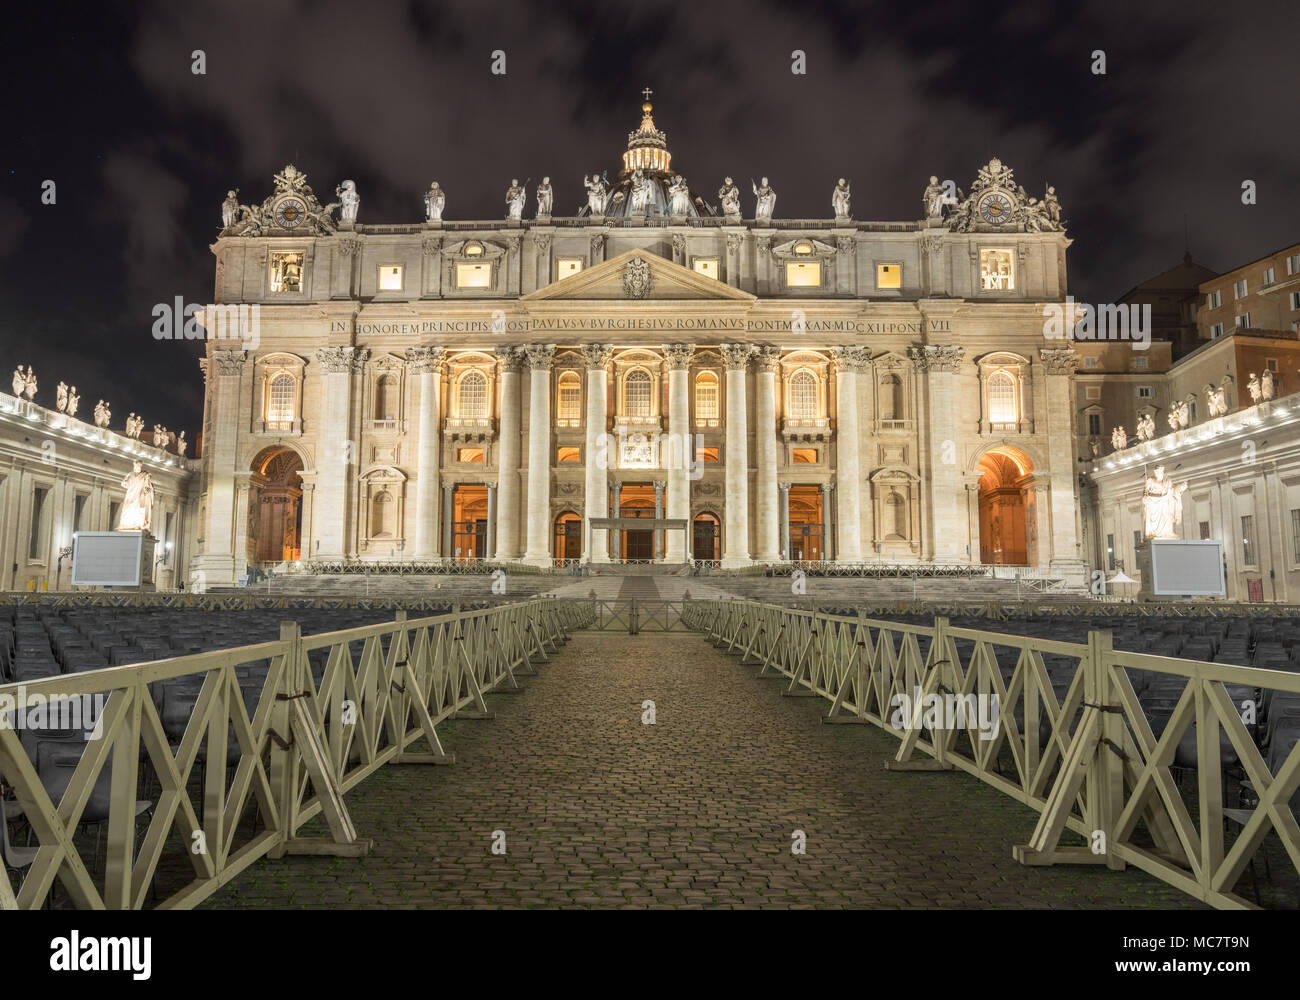 Entrance to St Peters Basilica at Easter - Stock Image